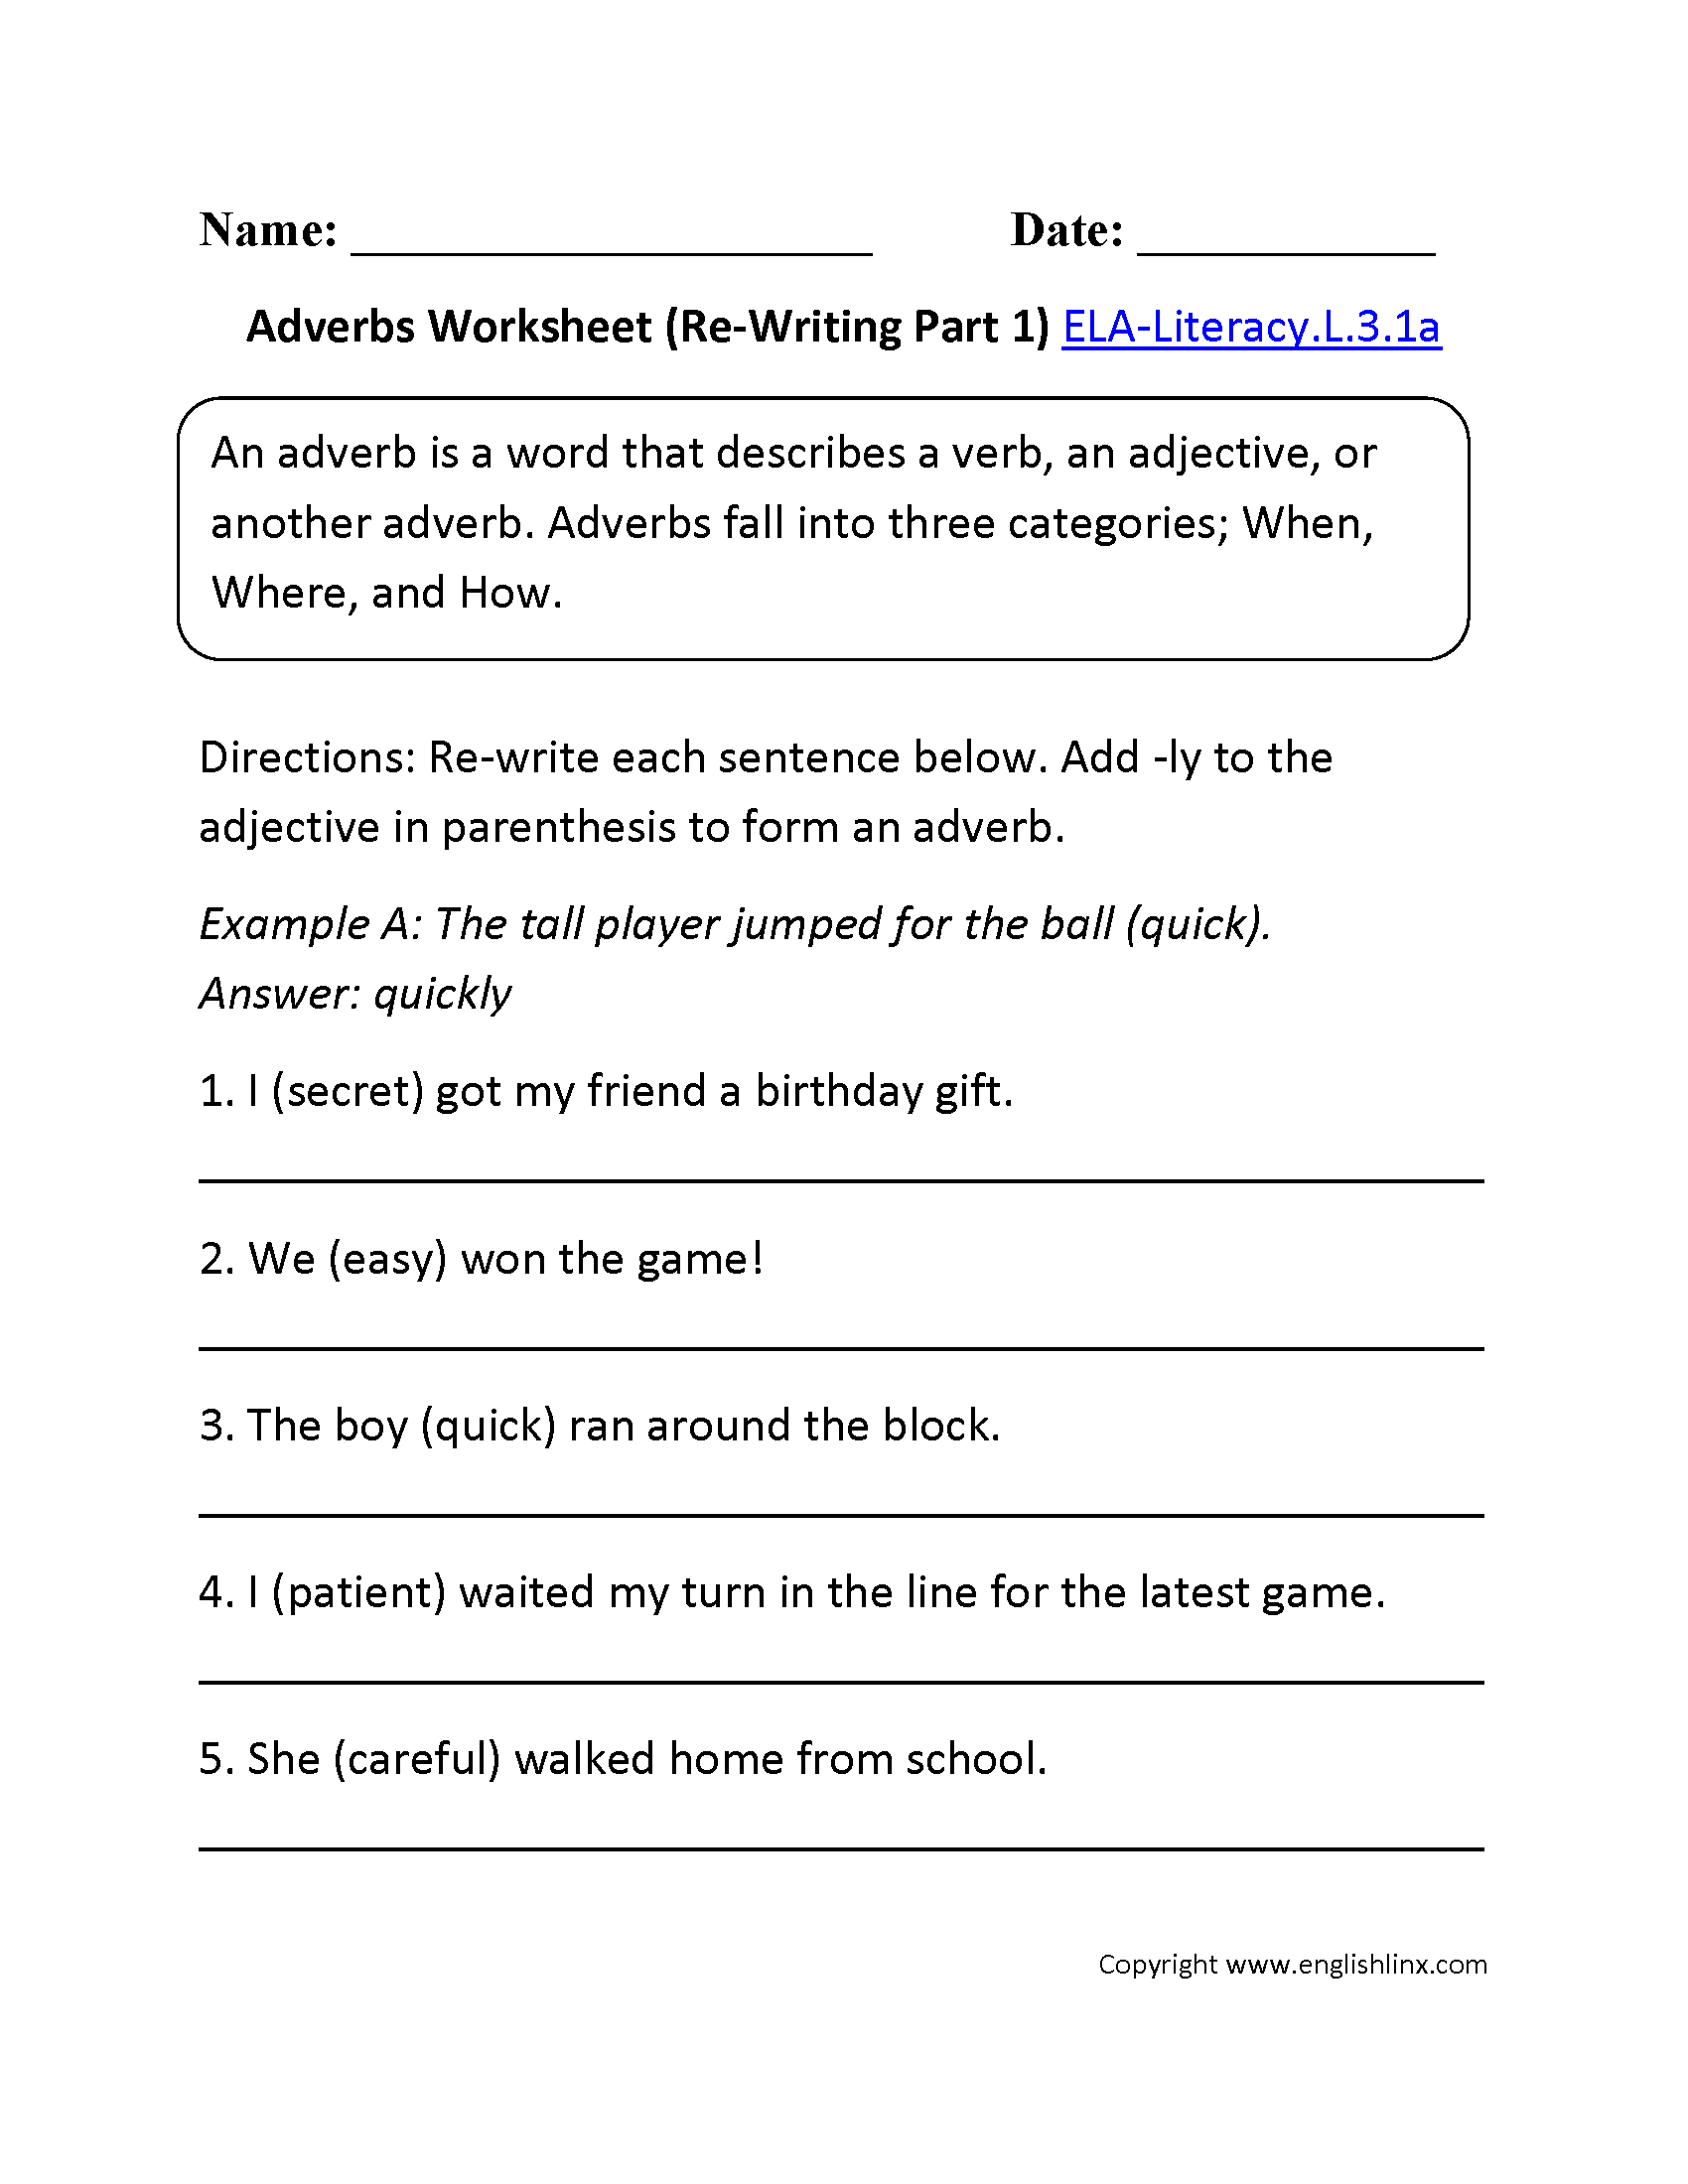 Adjectives Worksheet 1 Ela Literacy L 3 1a Language Worksheet